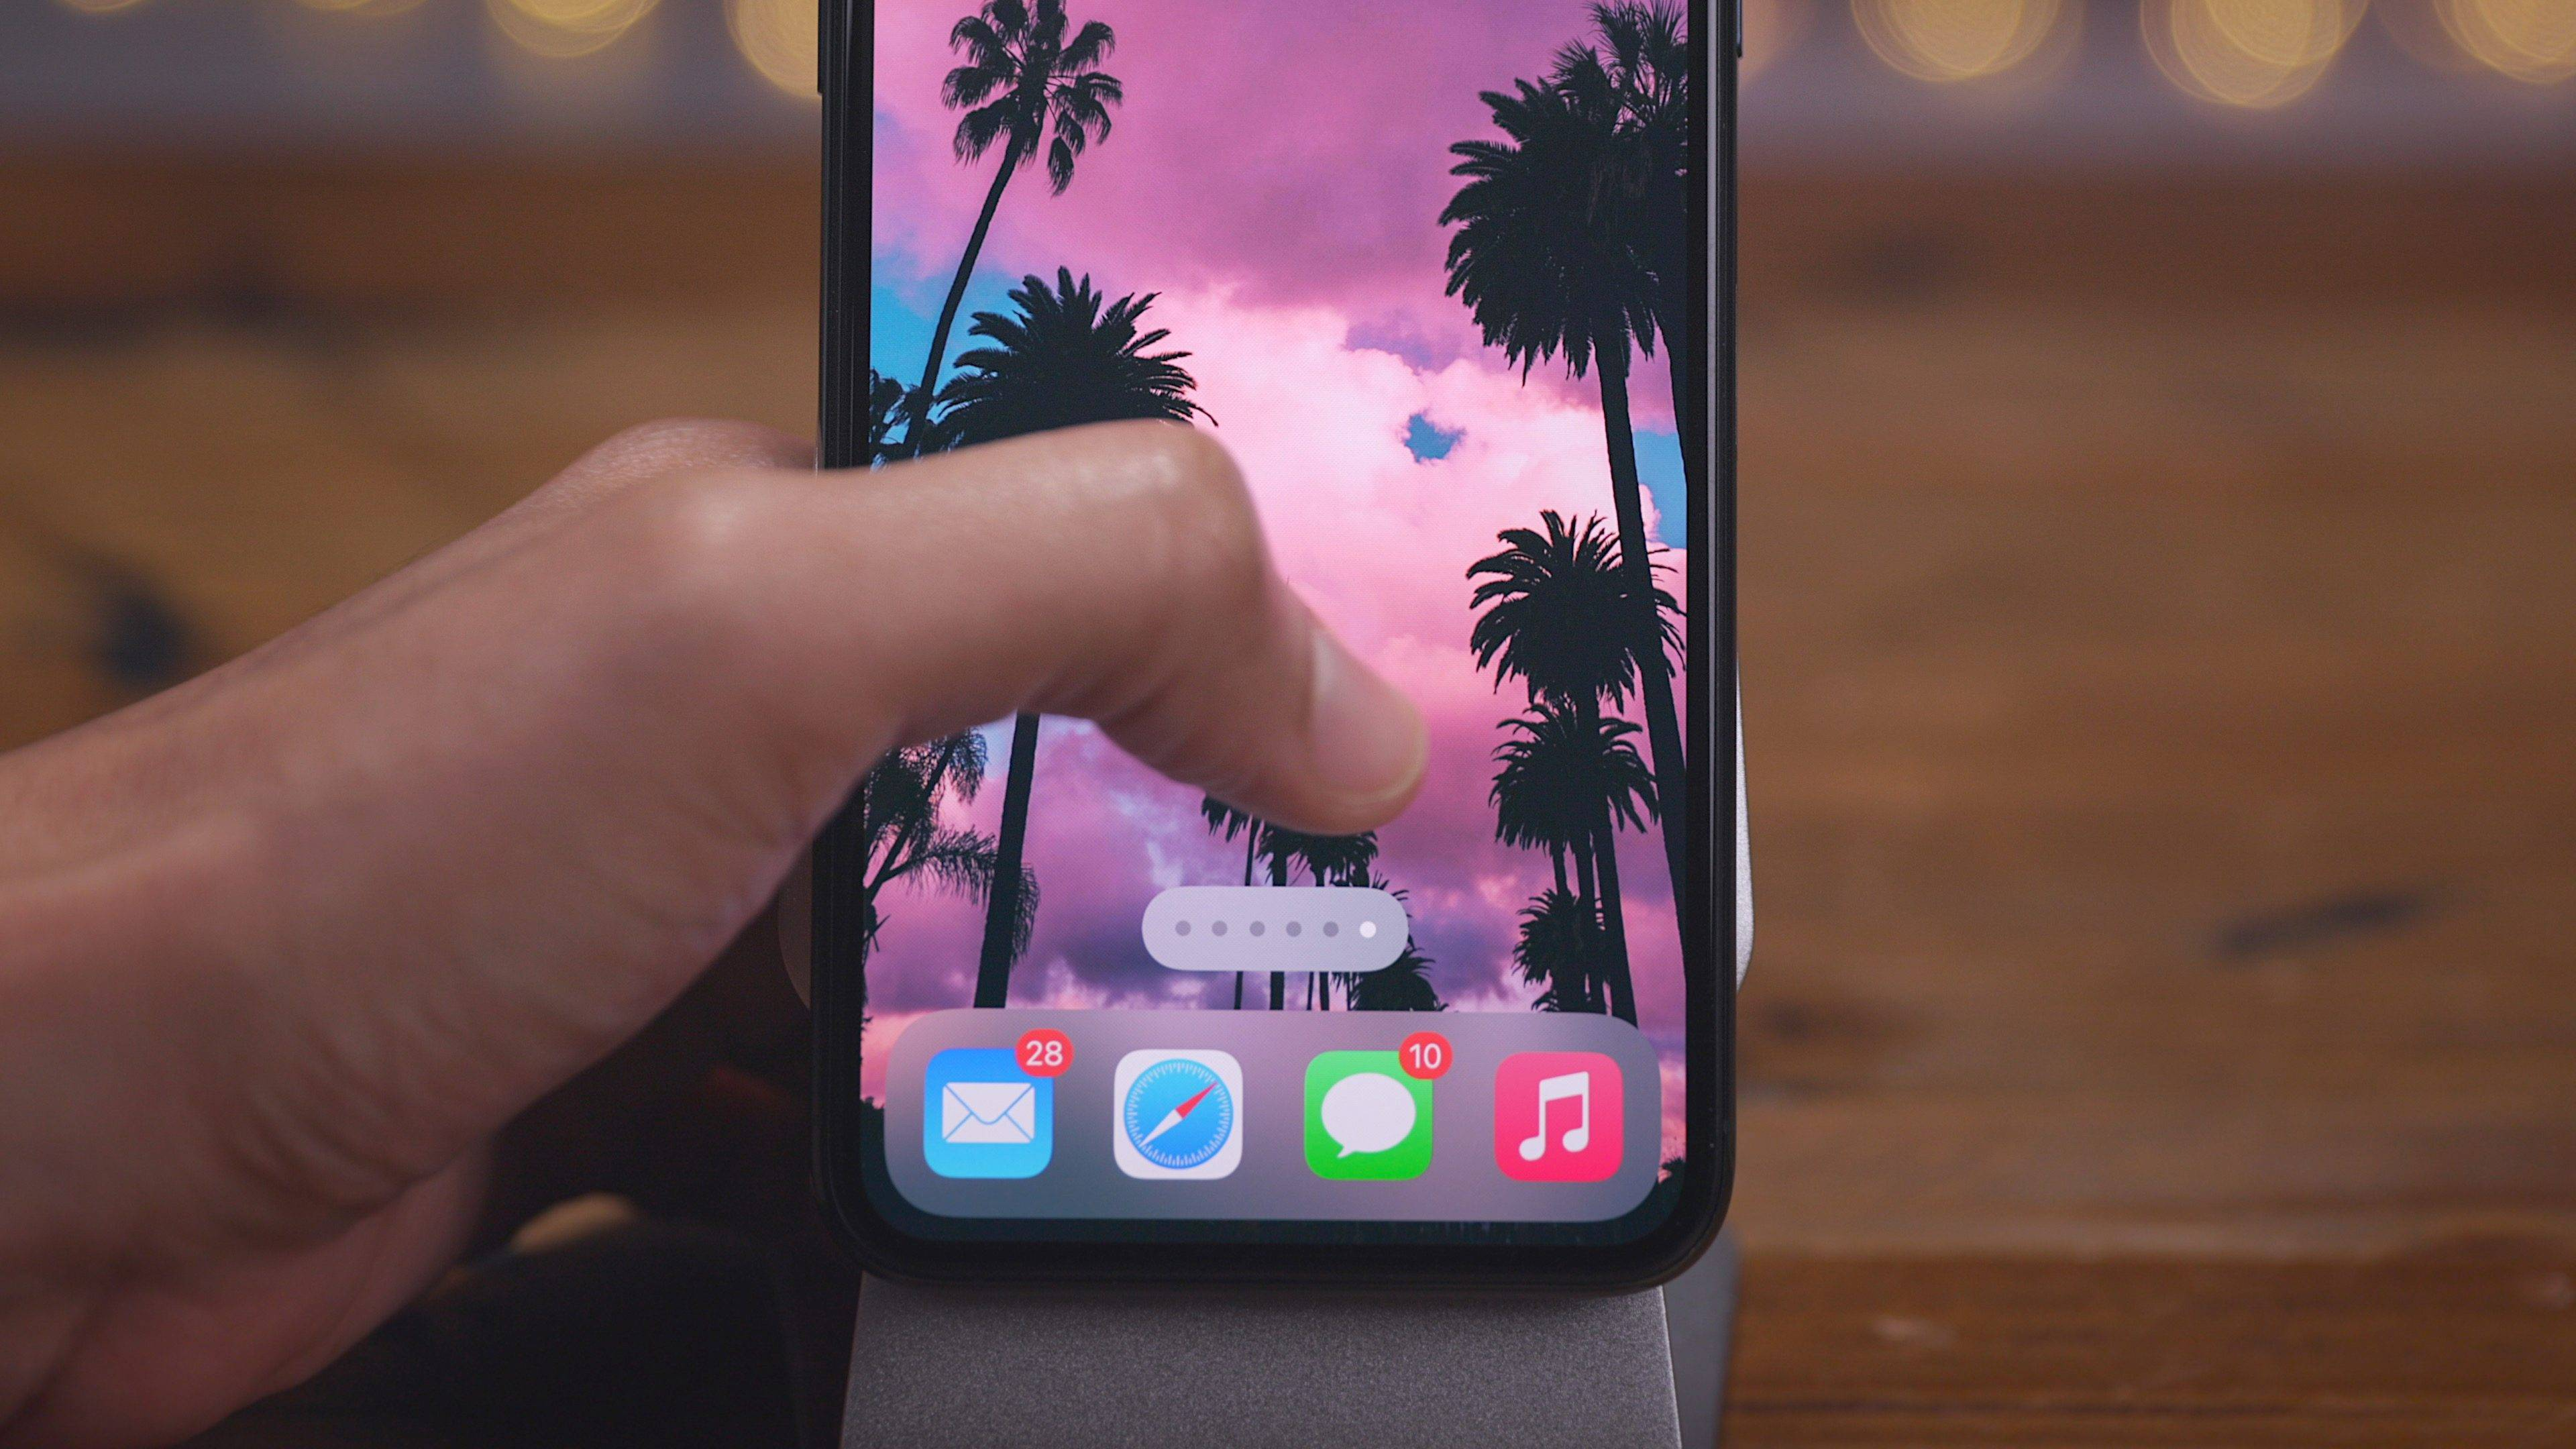 iOS-14-Home-Screen-tips-and-tricks-quickly-cycle-through-apps-1